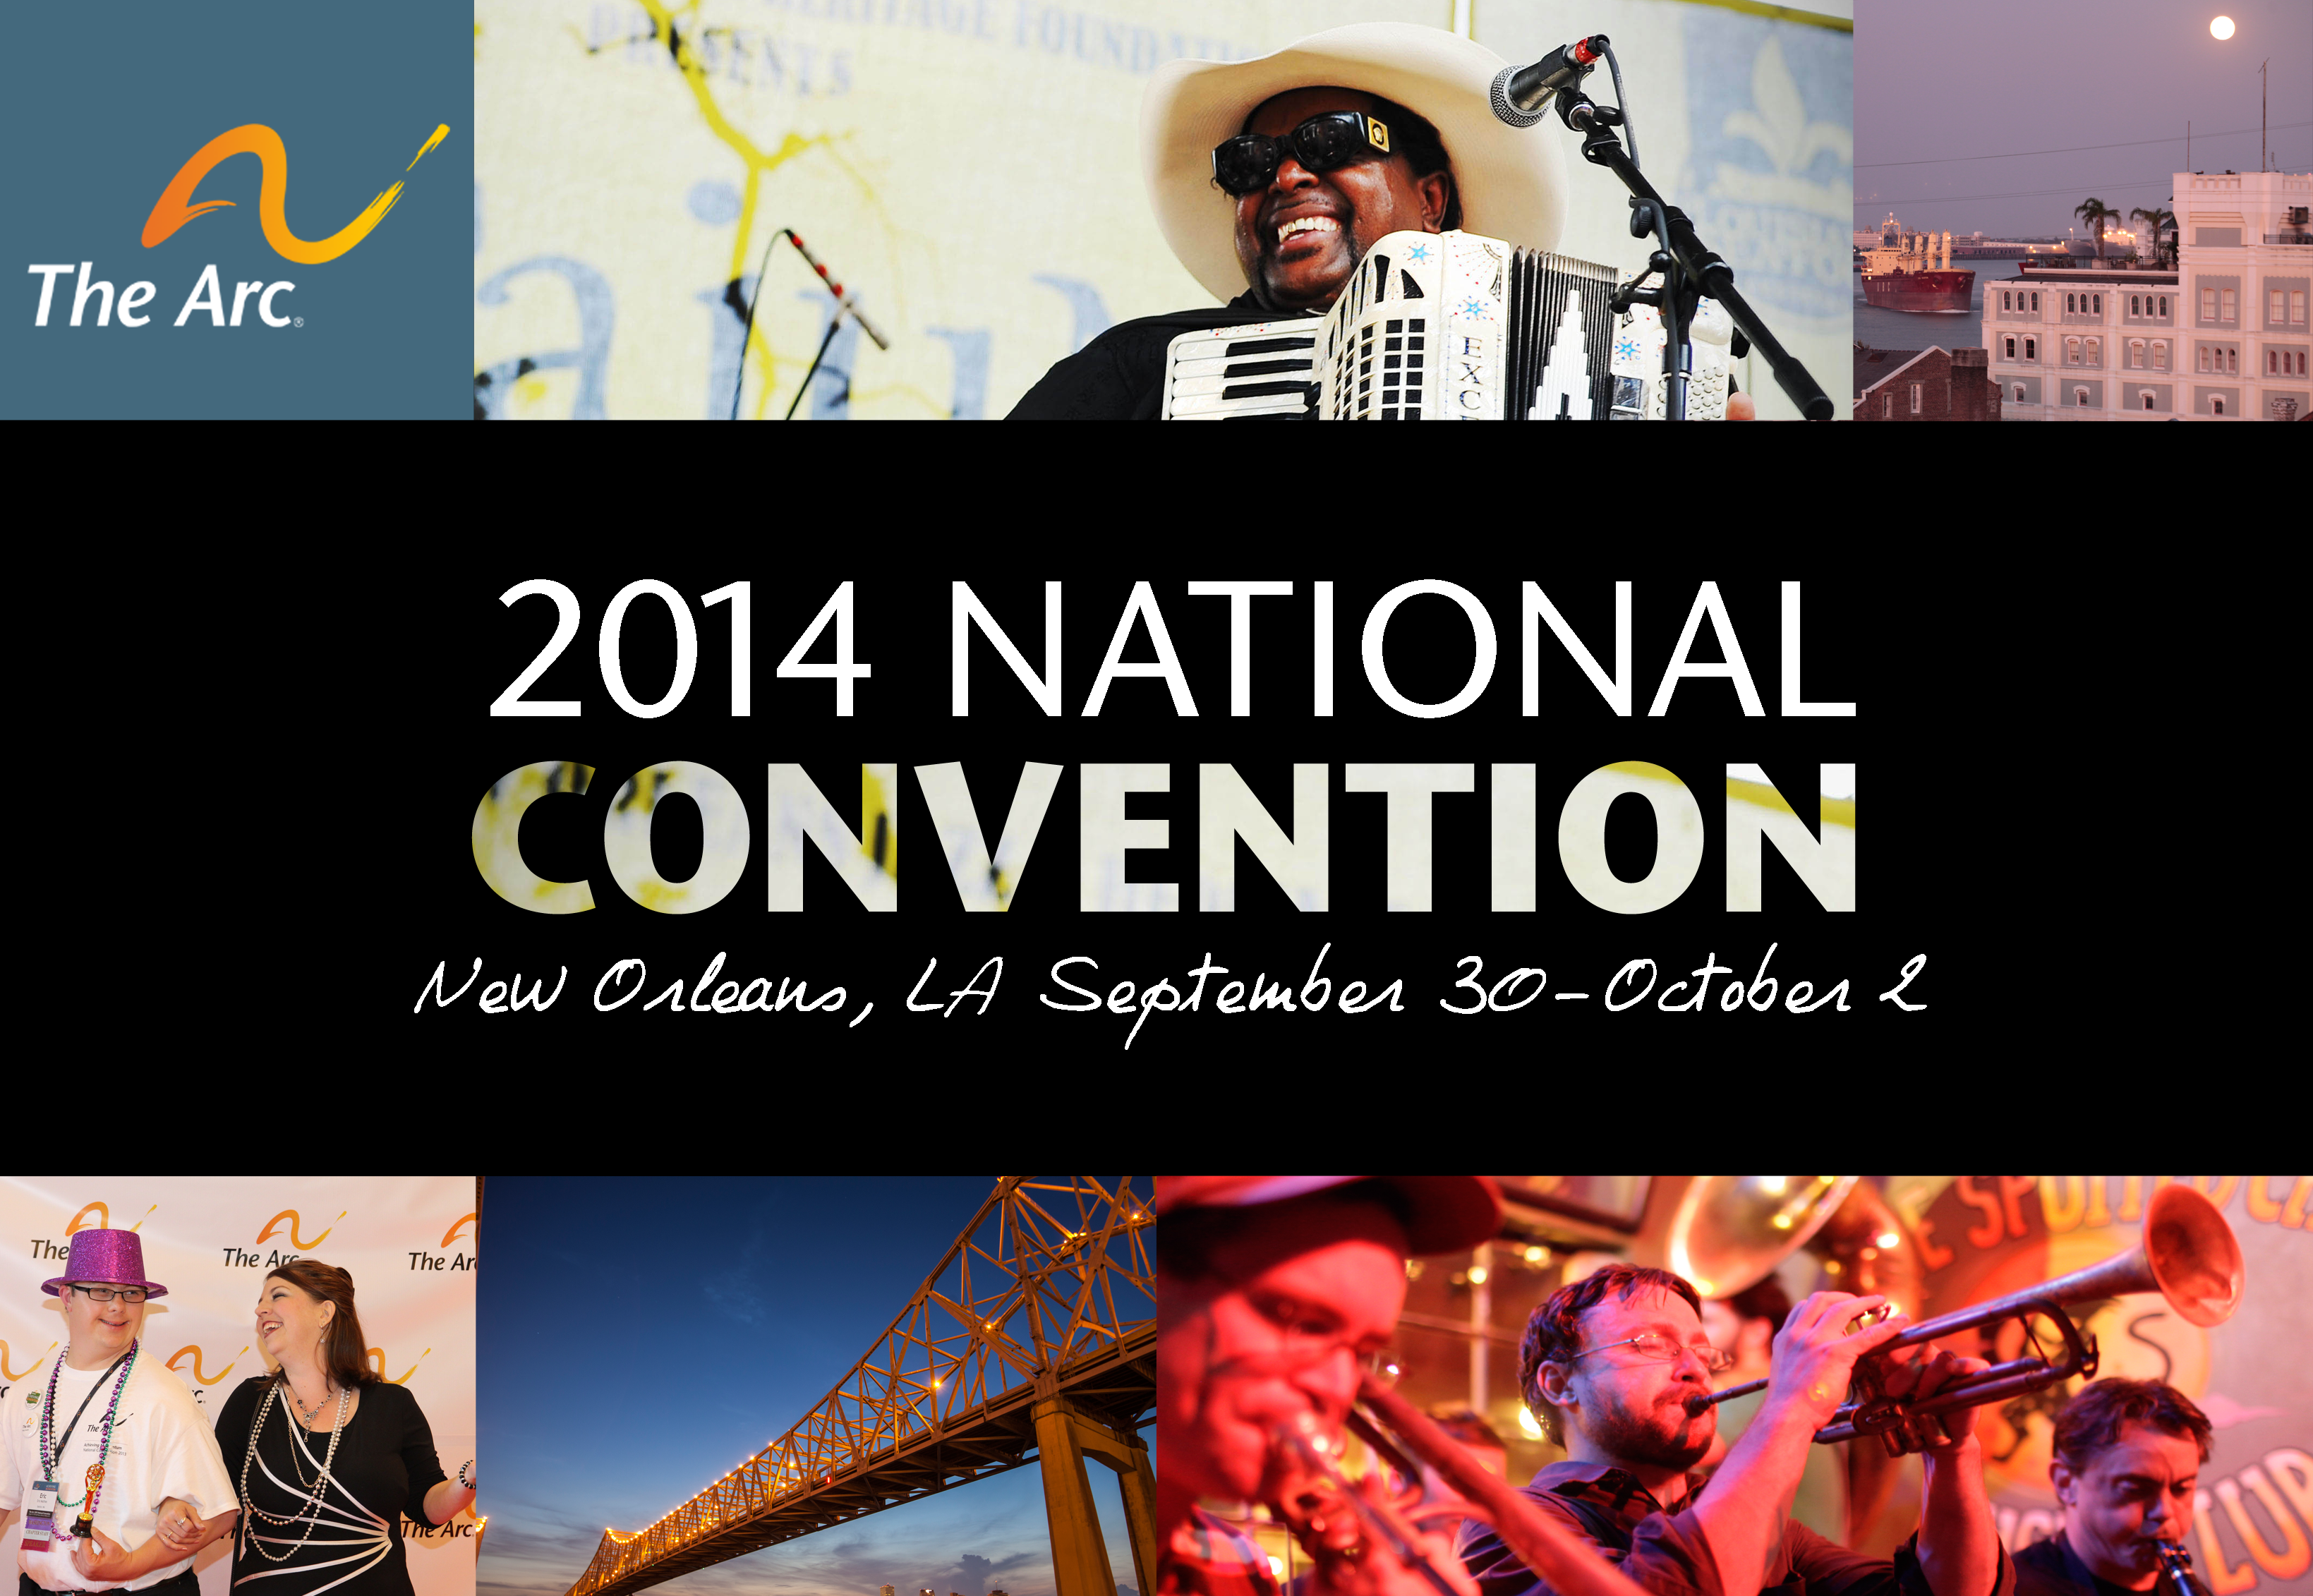 The Arc's 2014 National Convention